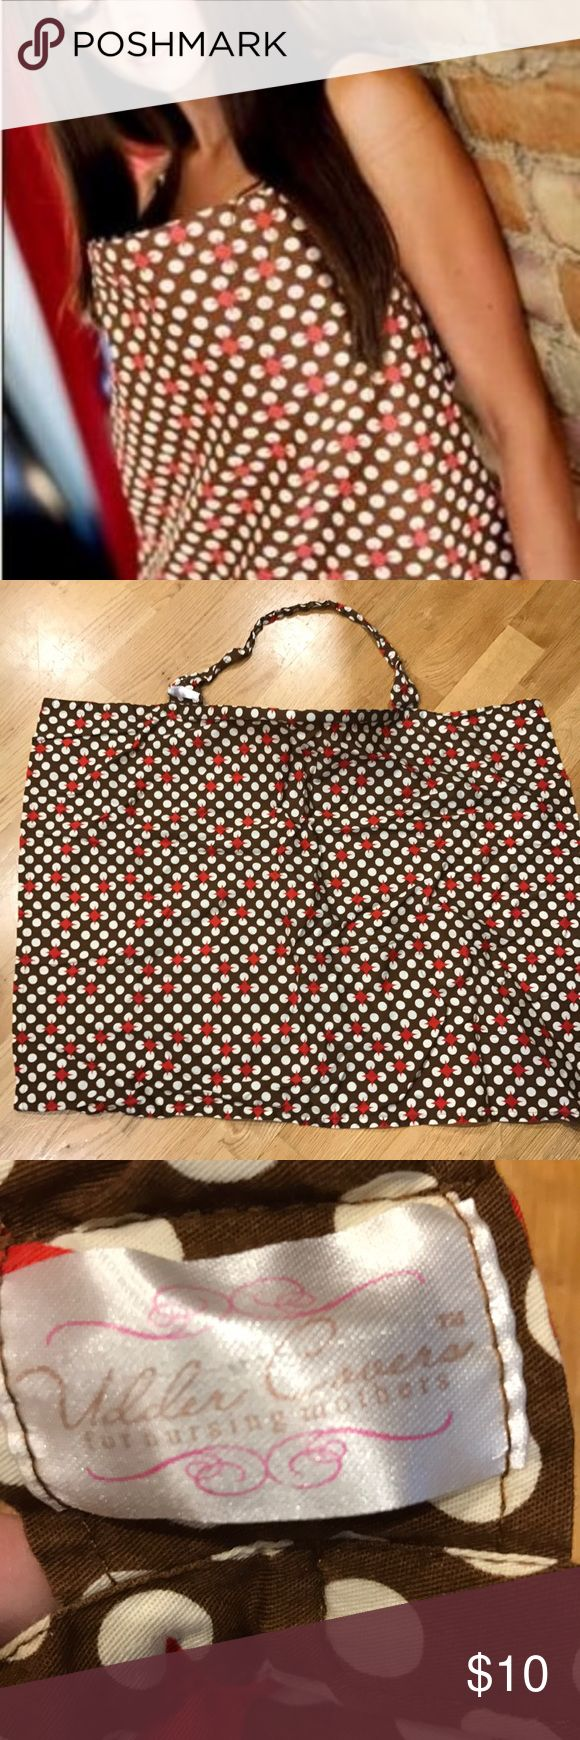 Udder Cover Nursing Cover up, on-the-go Nursing Udder Covers for Breast- feeding mothers on the go. This is a brown and white polka-for pattern w Red diamonds. Incredibly useful piece for nursing in public. Used but in excellent condition. Udder Covers Other